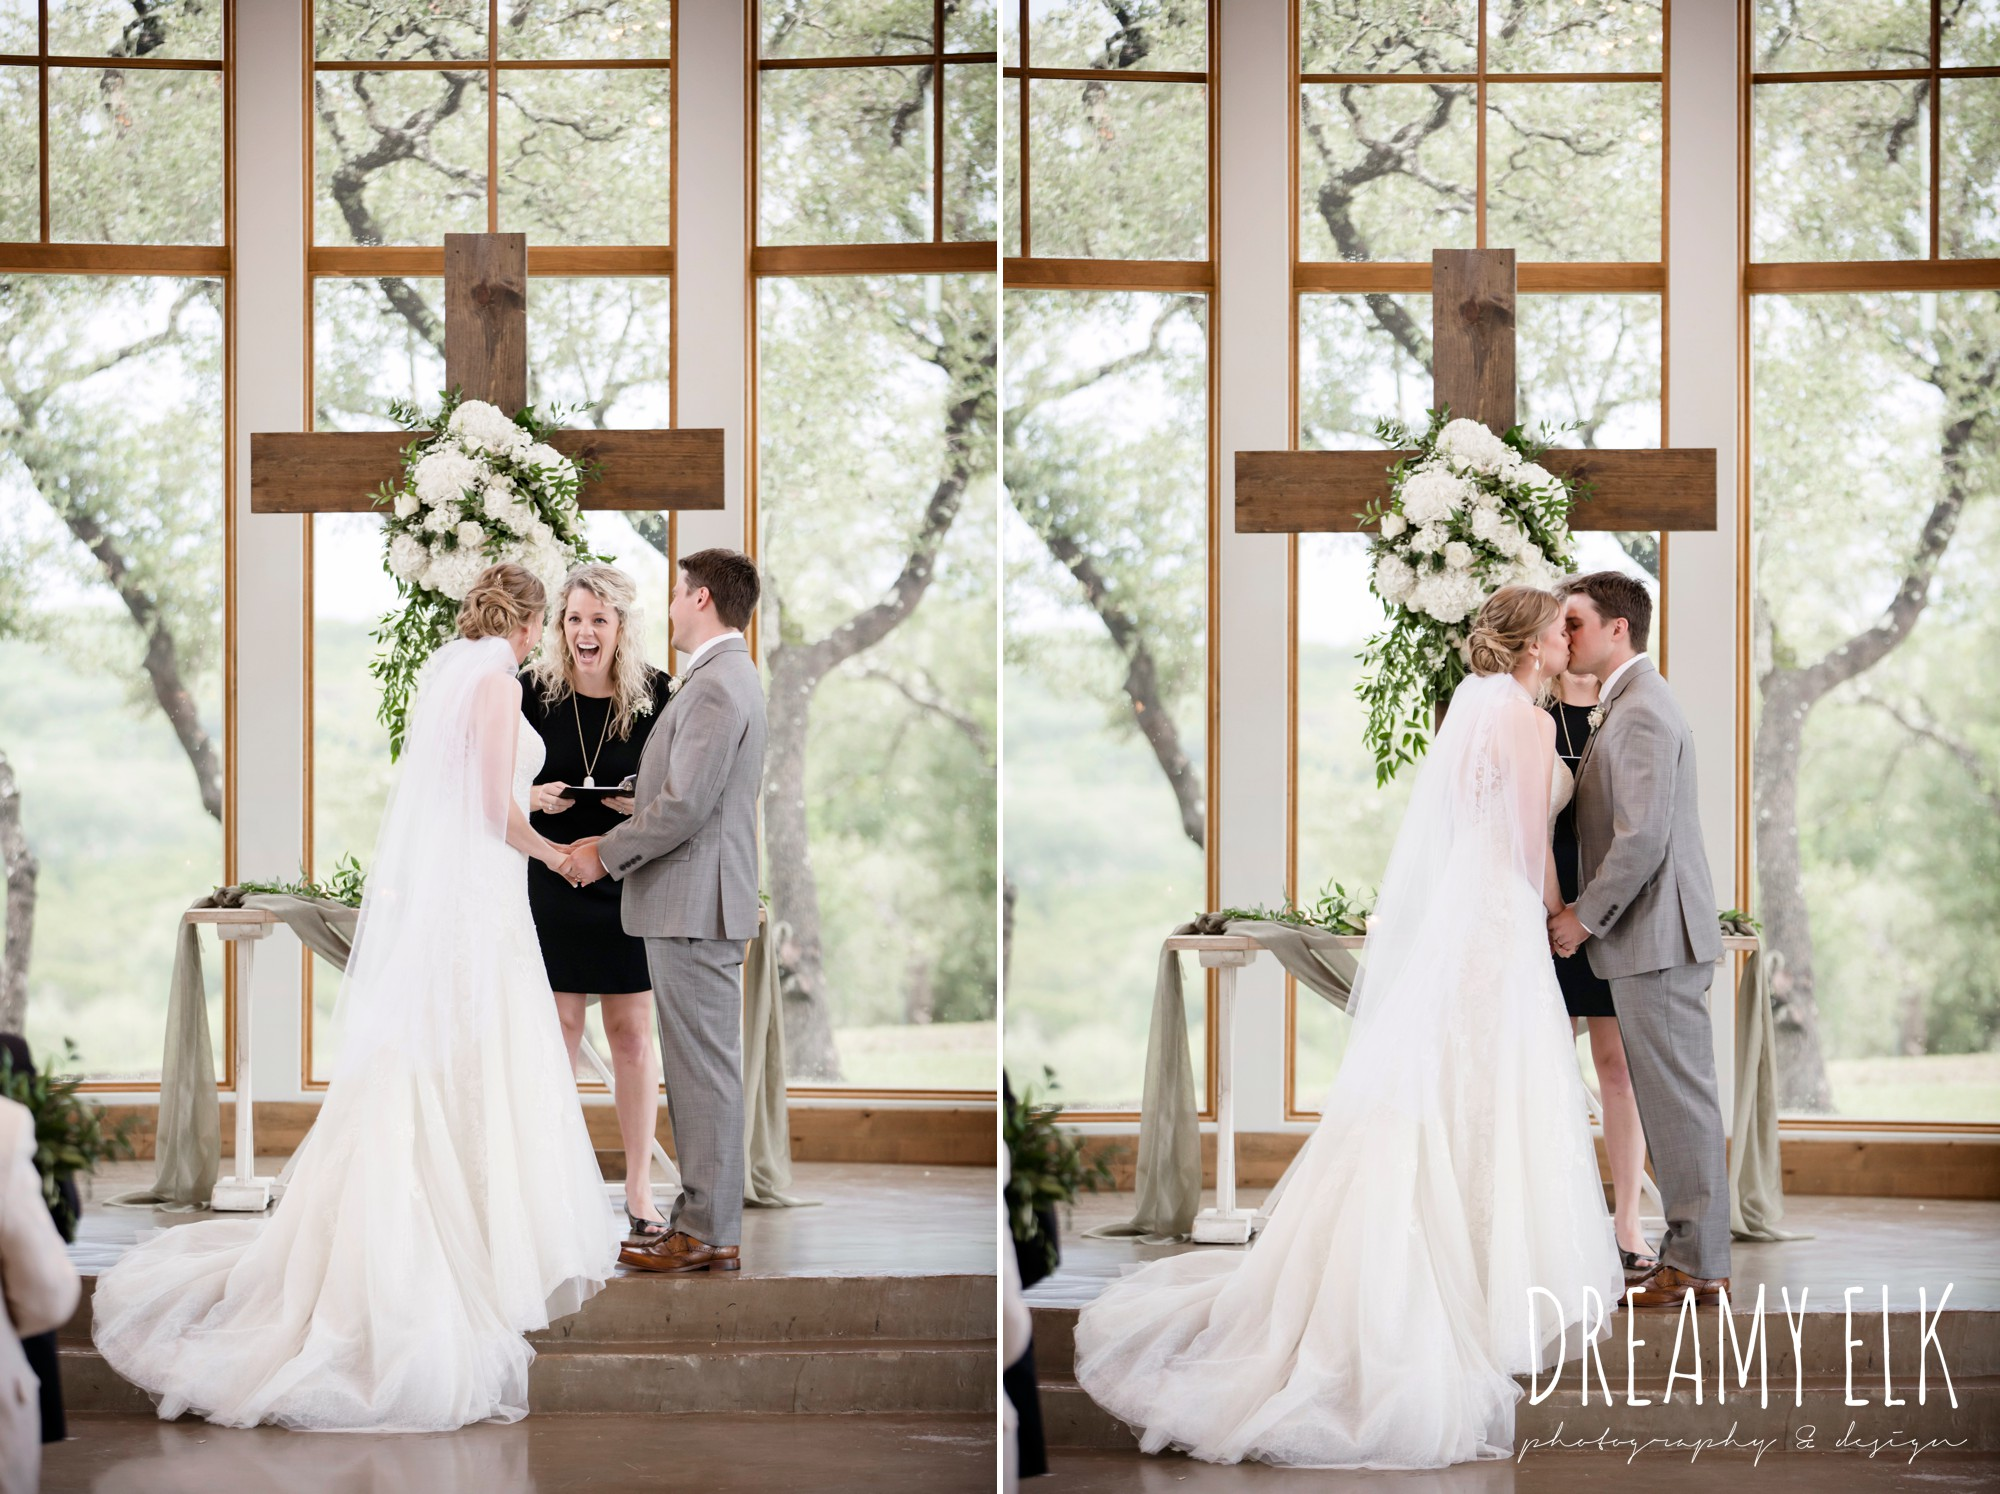 indoor wedding ceremony, bride and groom kissing, summer july wedding photo, canyonwood ridge, dripping springs, texas {dreamy elk photography and design}